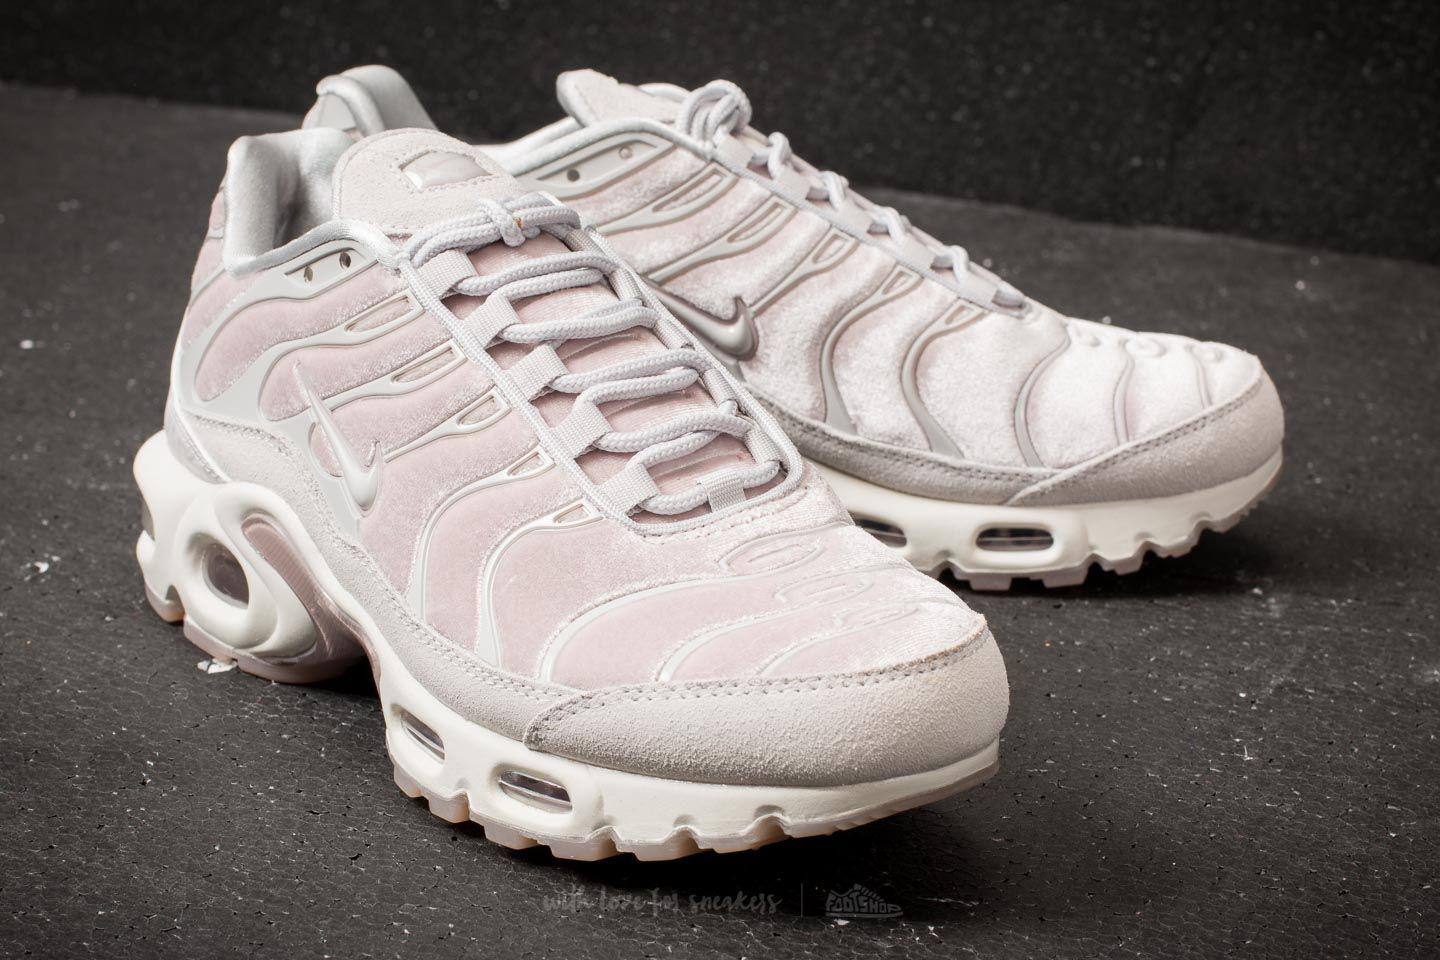 773766a9b69402 Lyst - Nike Wmns Air Max Plus Lx Particle Rose  Vast Grey in Gray